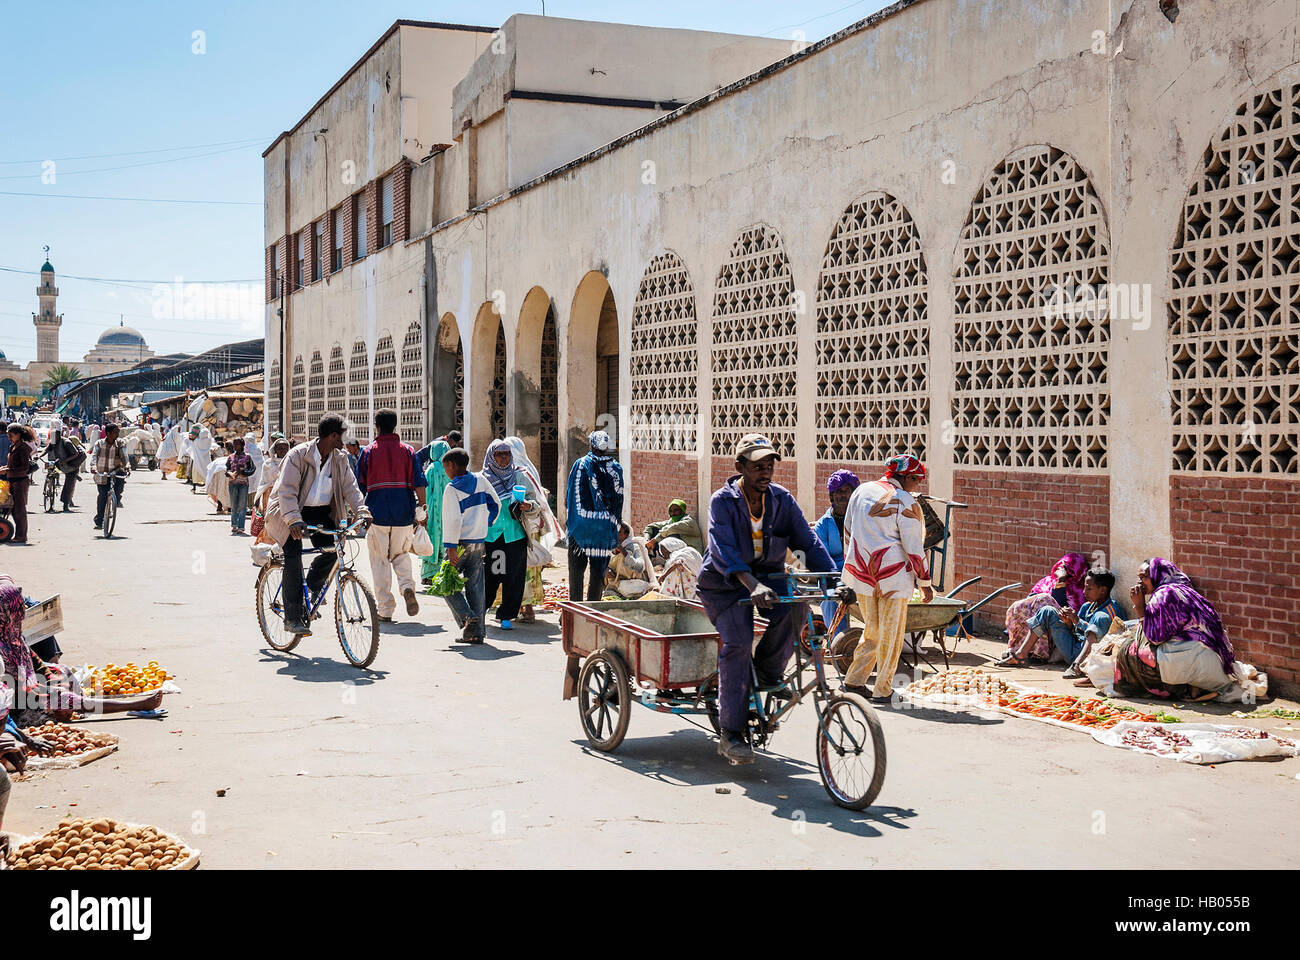 street in central market shopping area of asmara city eritrea - Stock Image